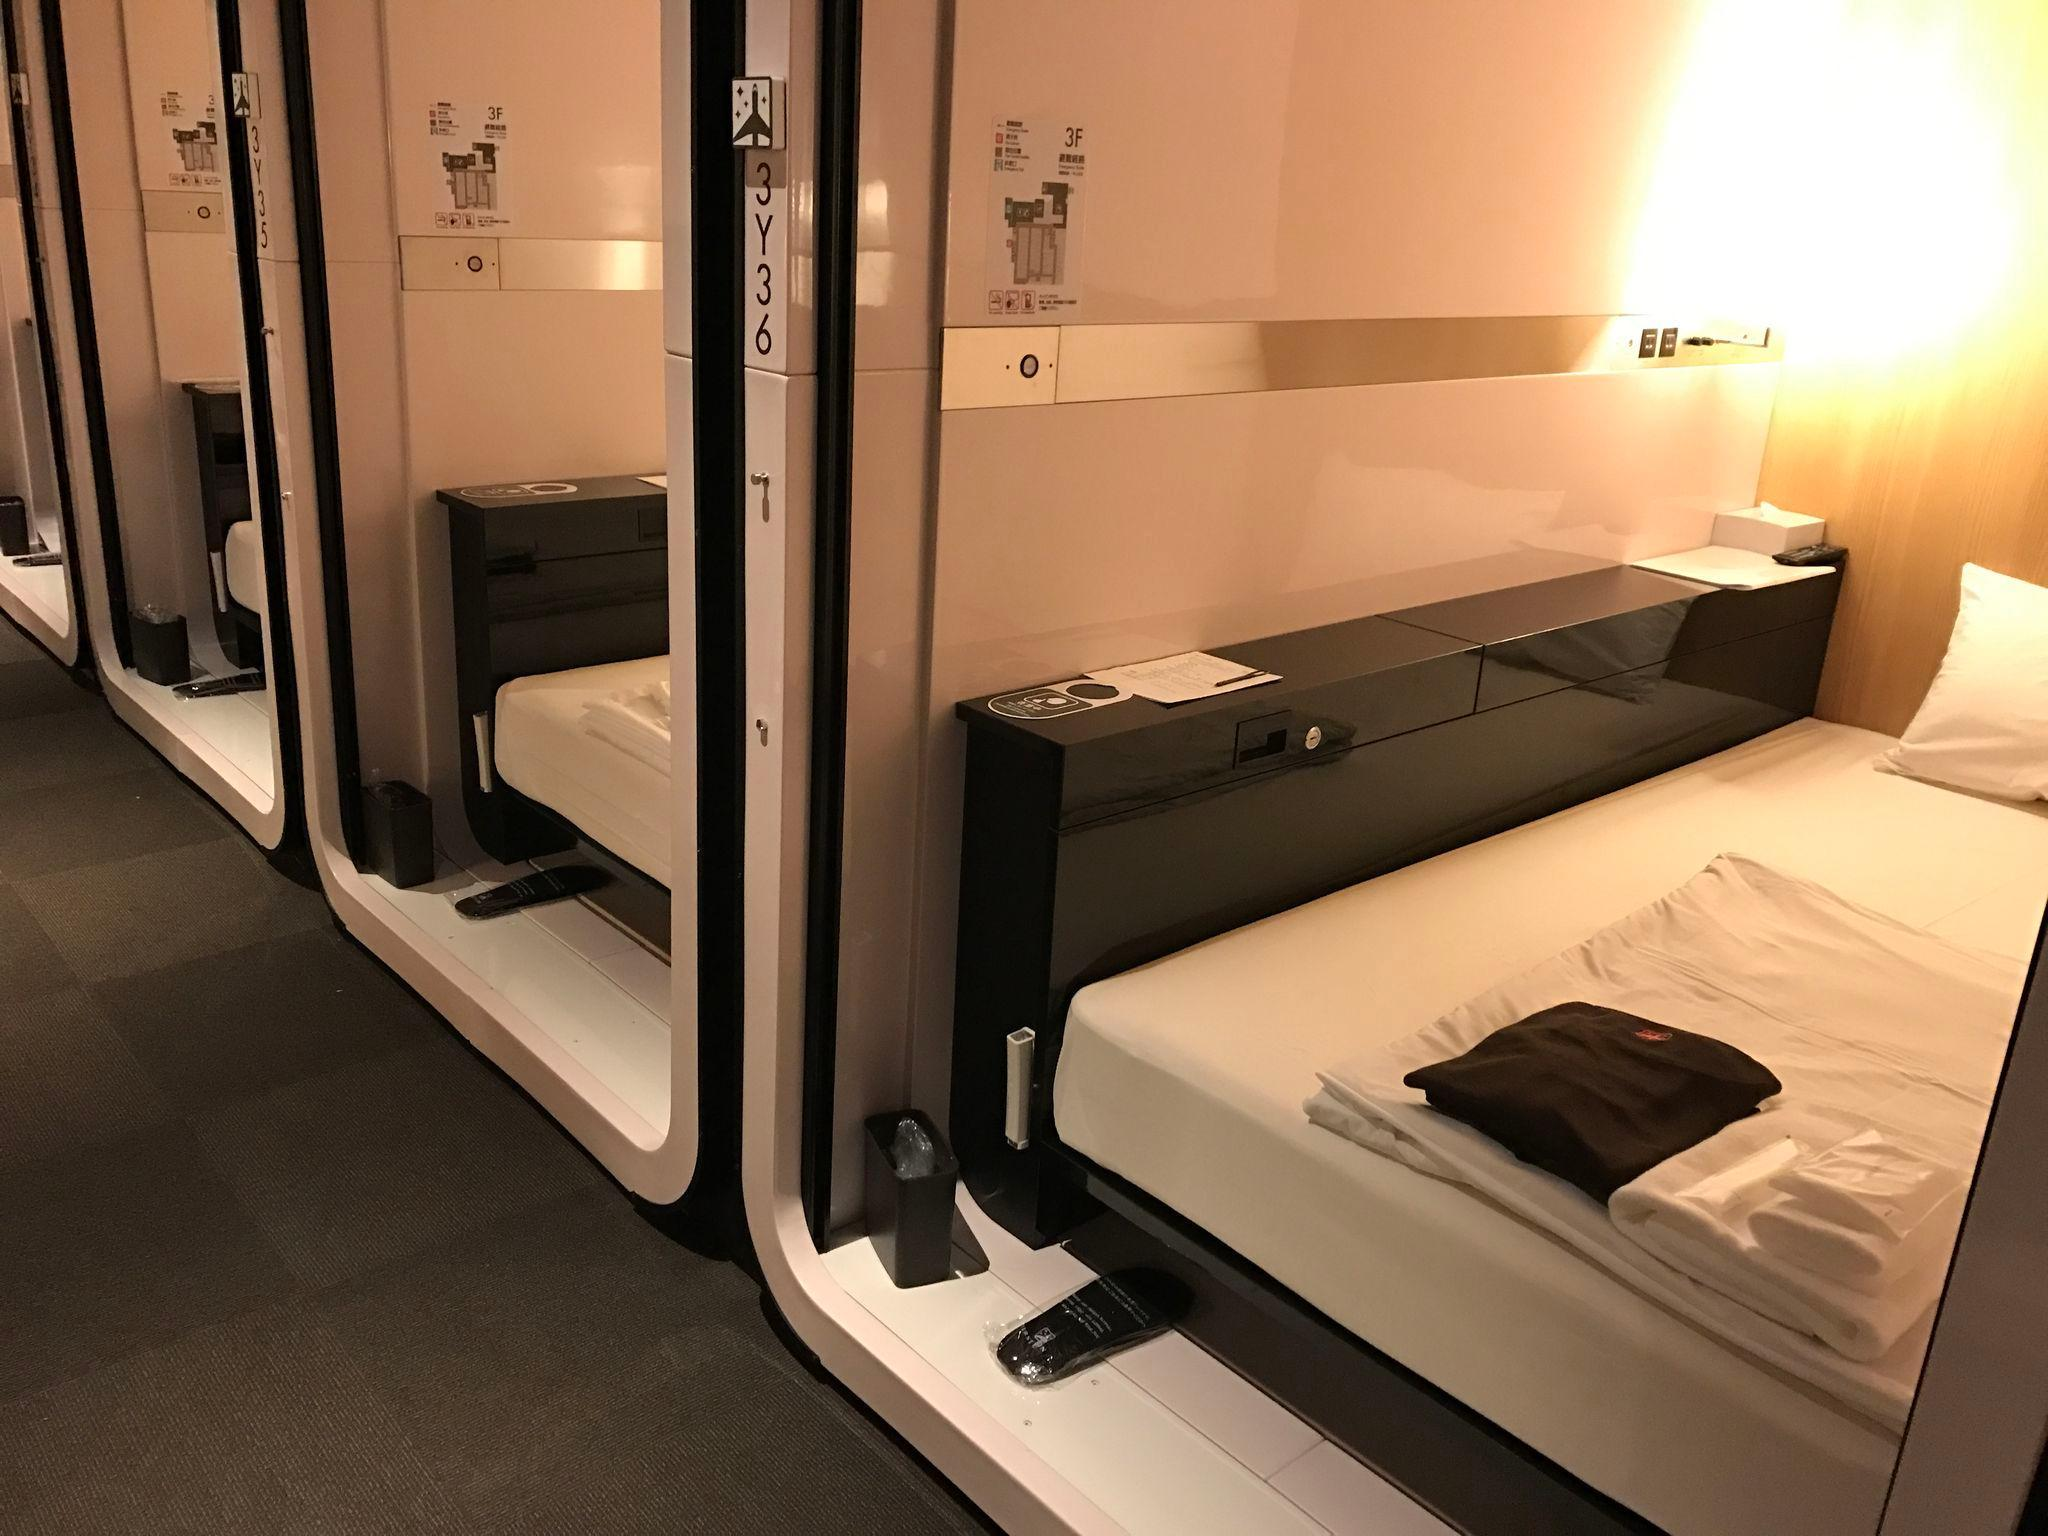 Cabine Estilo Cápsula Executiva - Homens (Business Class Cabin (Male))